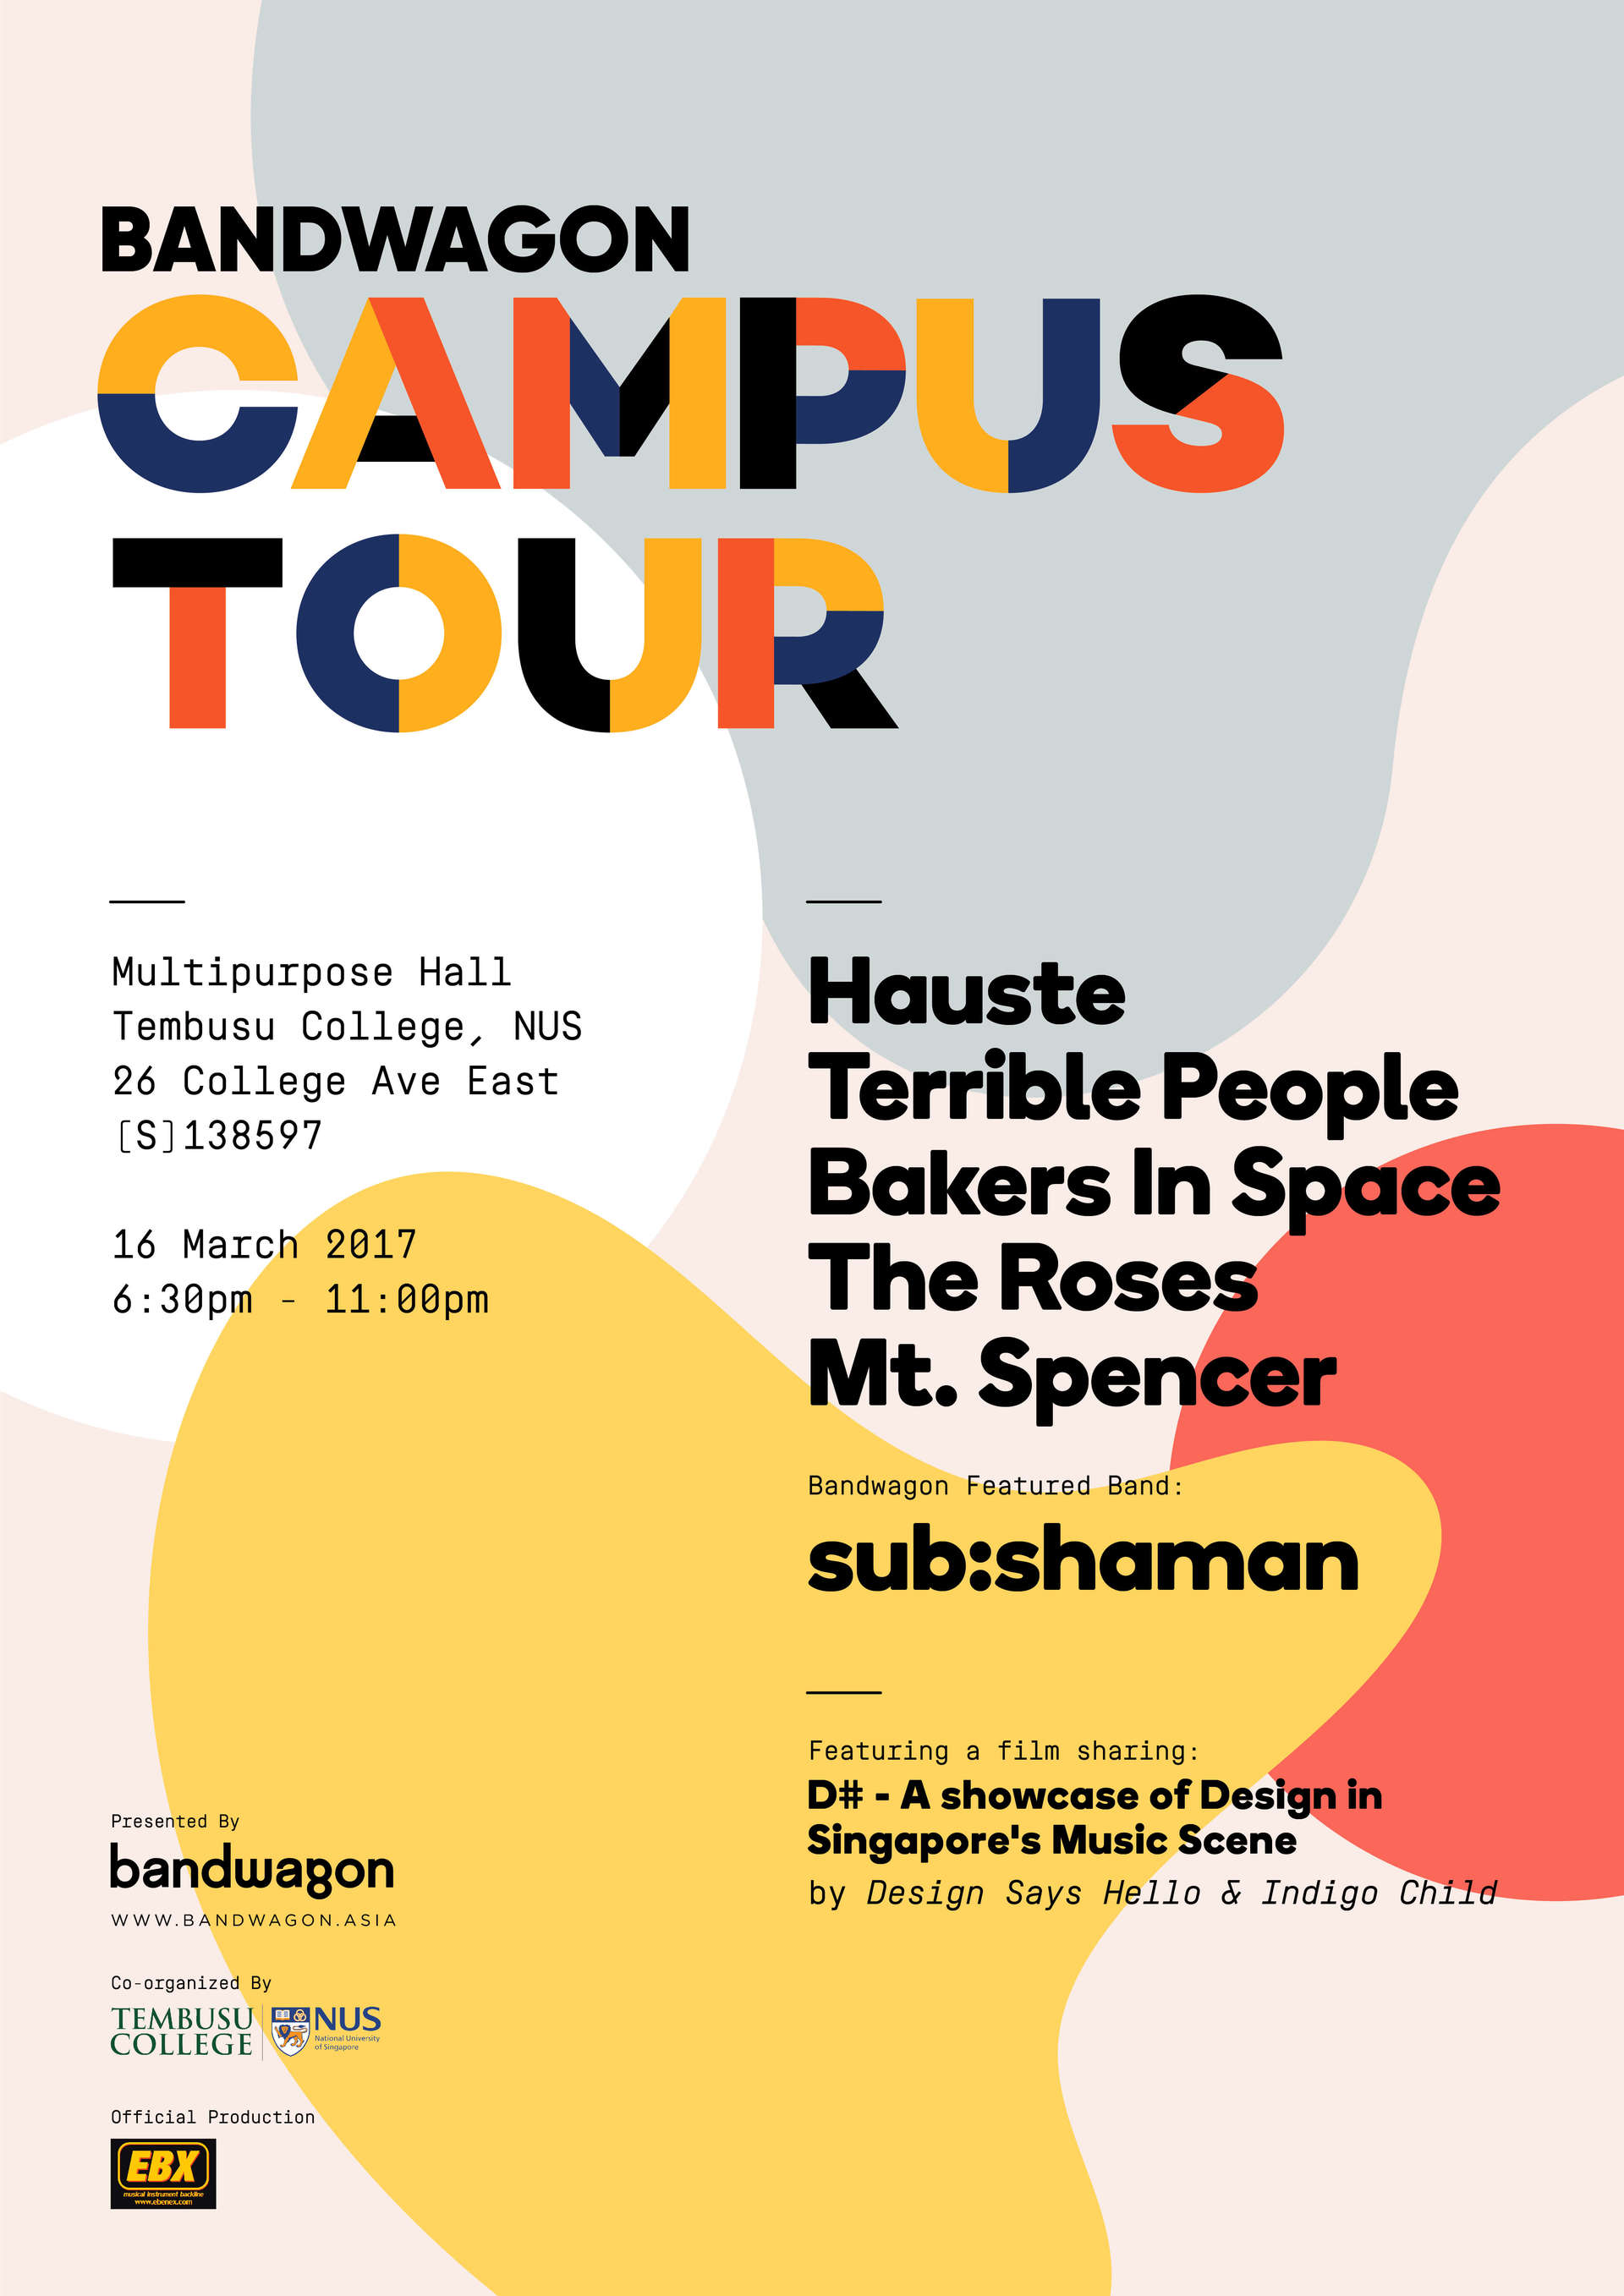 bandwagon campus tour — sub:shaman nus bakers in space hauste bennett bay